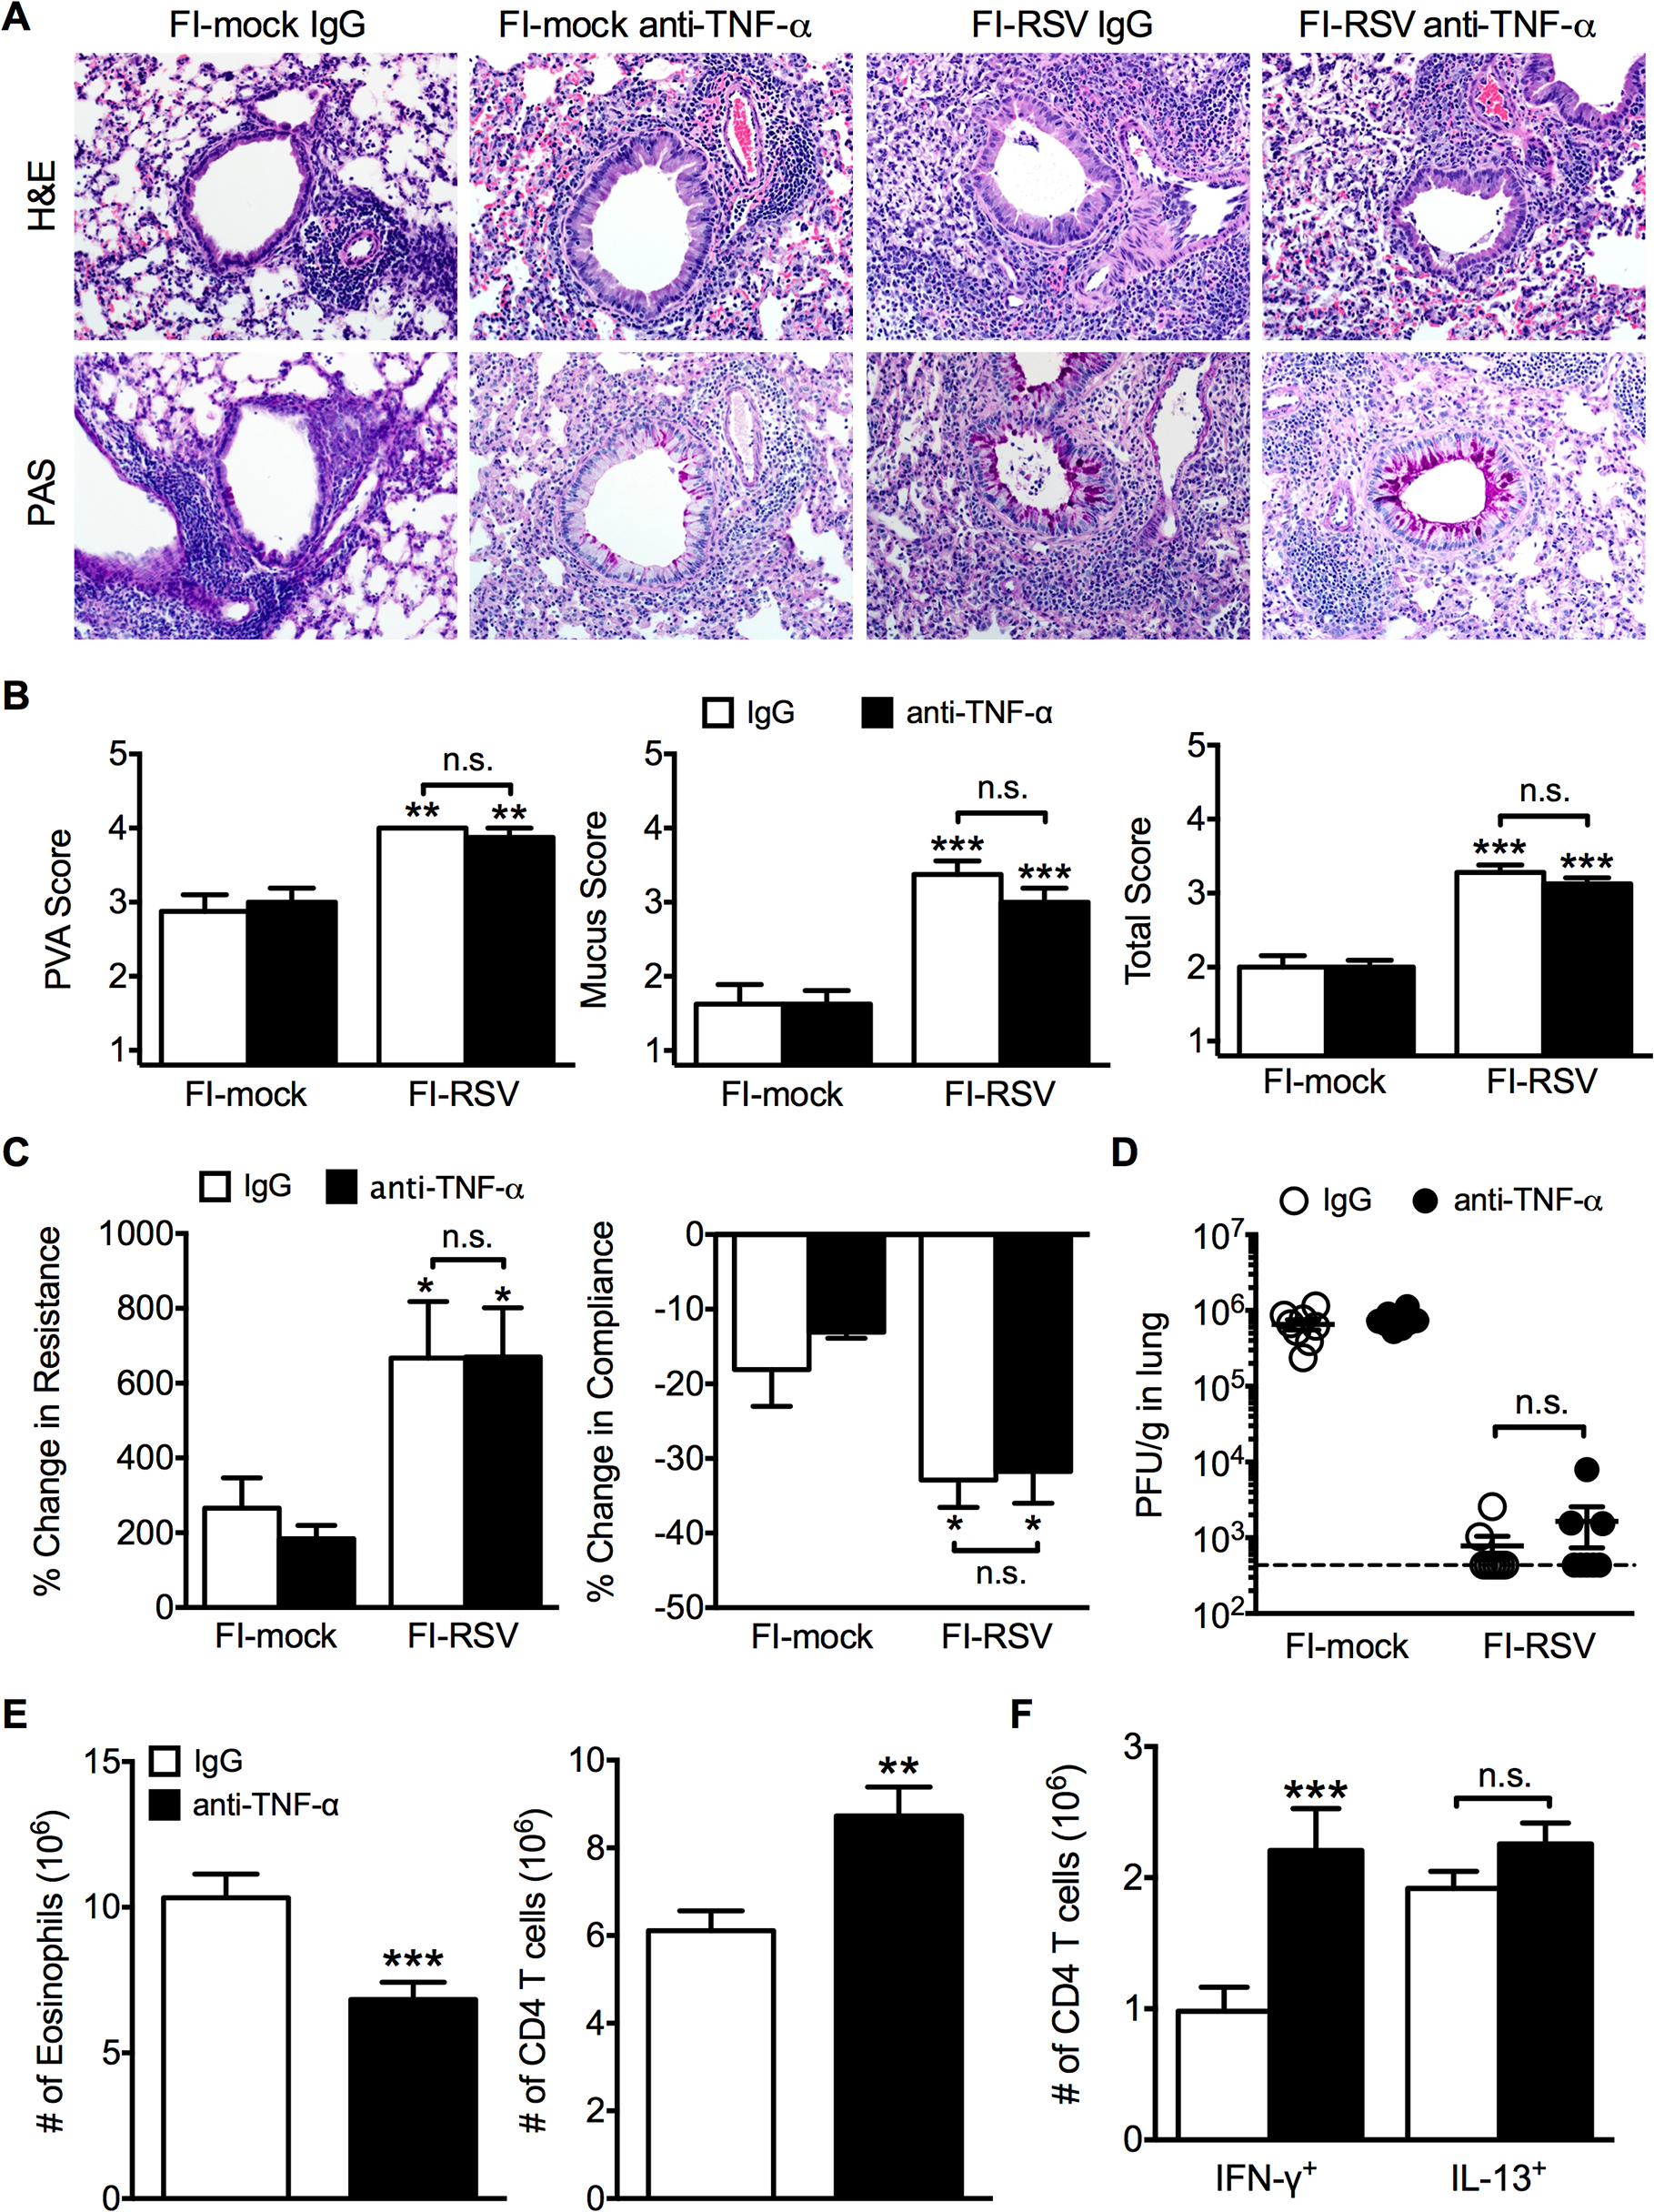 TNF-α contributes to airway obstruction and weight loss during FI-RSV VED.